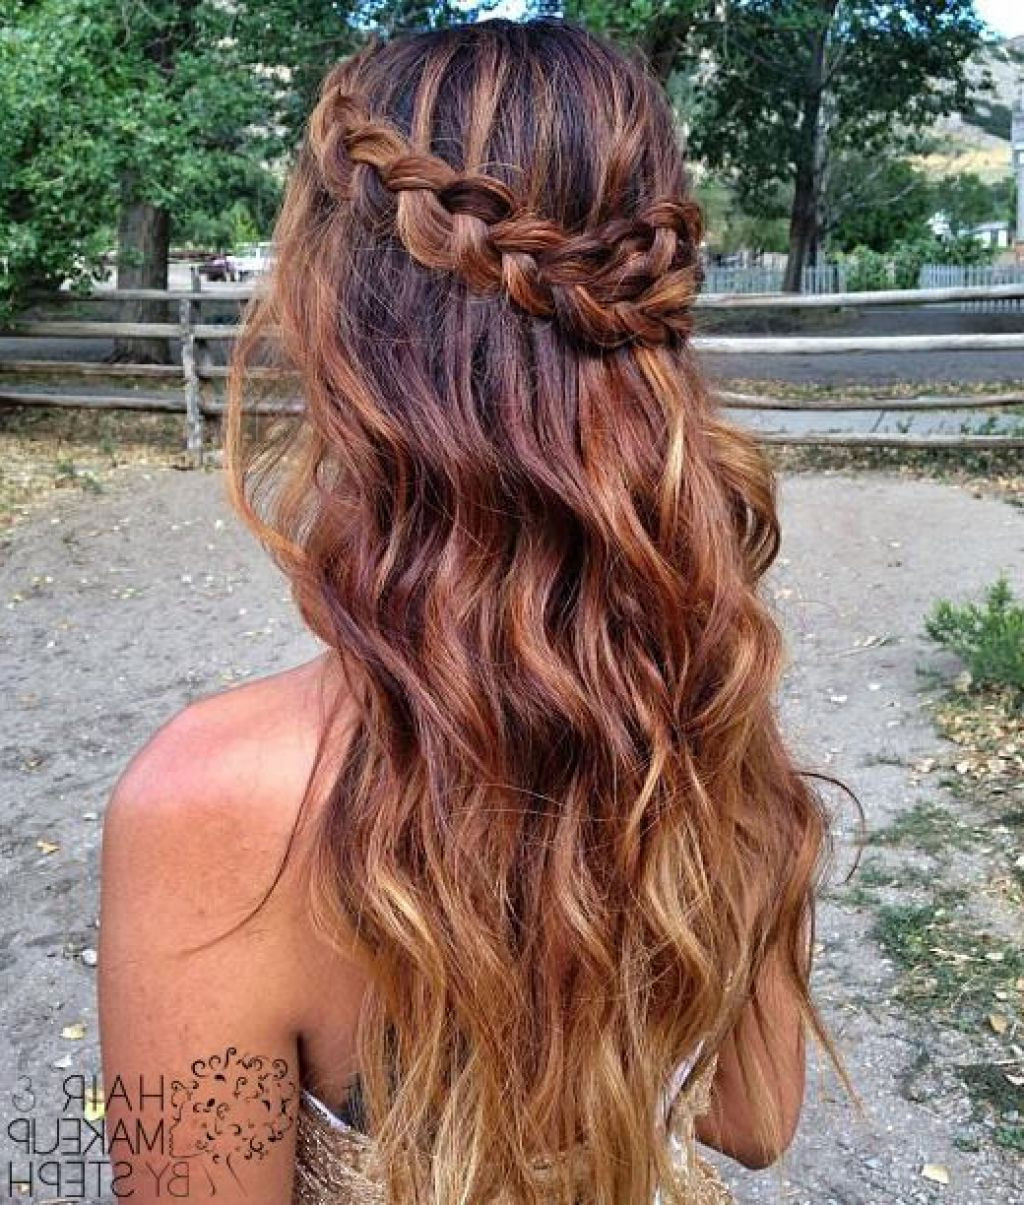 Best ideas about Prom Half Up Half Down Hairstyles . Save or Pin Half Up Half Down Prom Hairstyles Hairstyle Now.